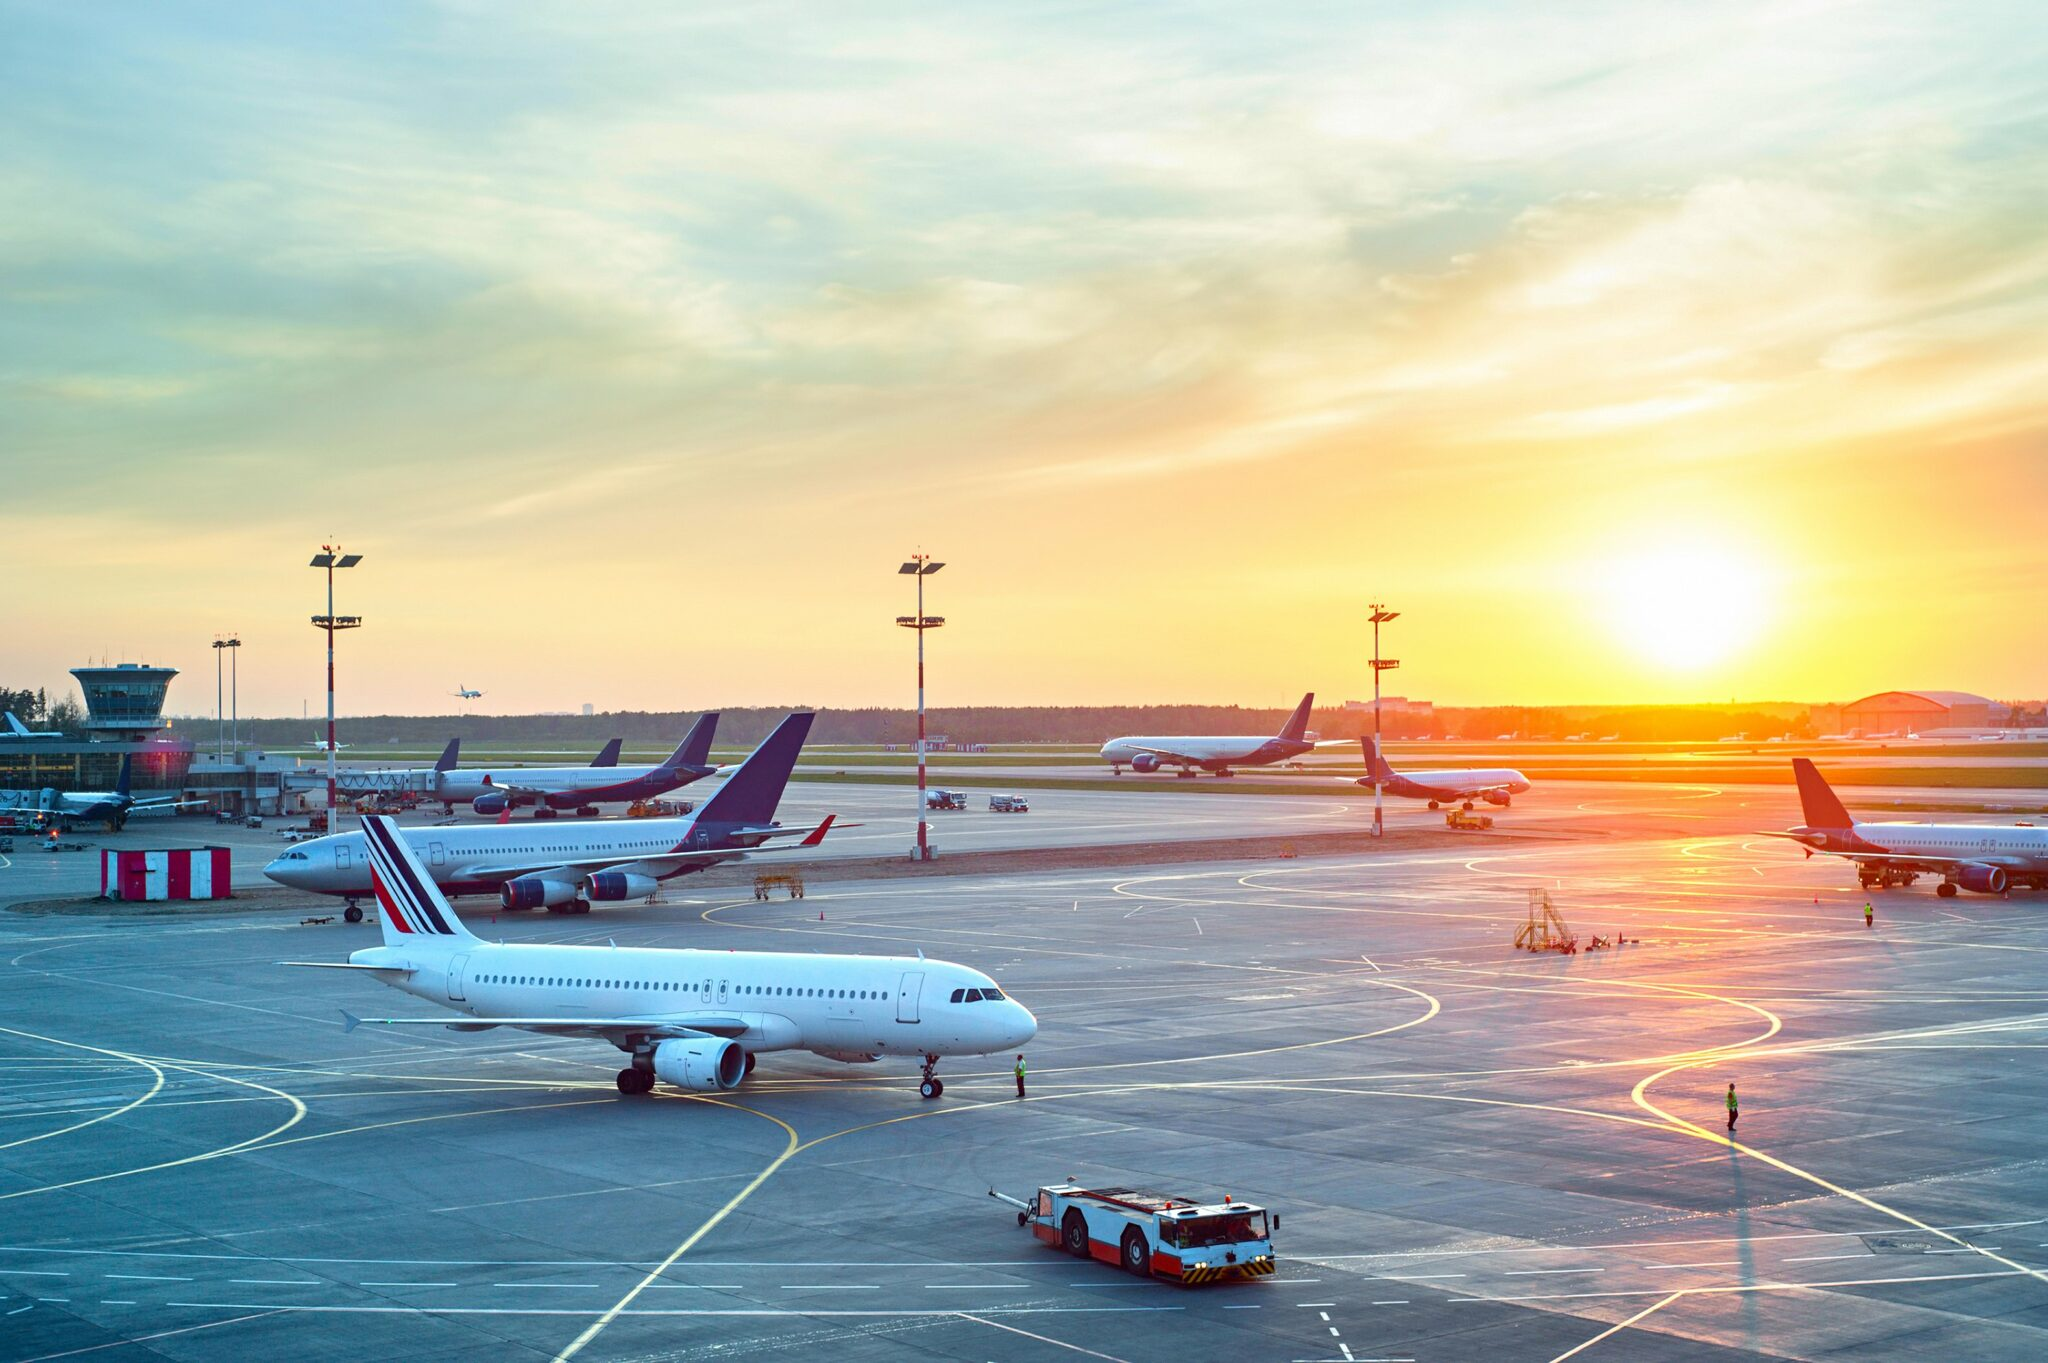 An outdoor airport lot with multiple airplanes at sunset.